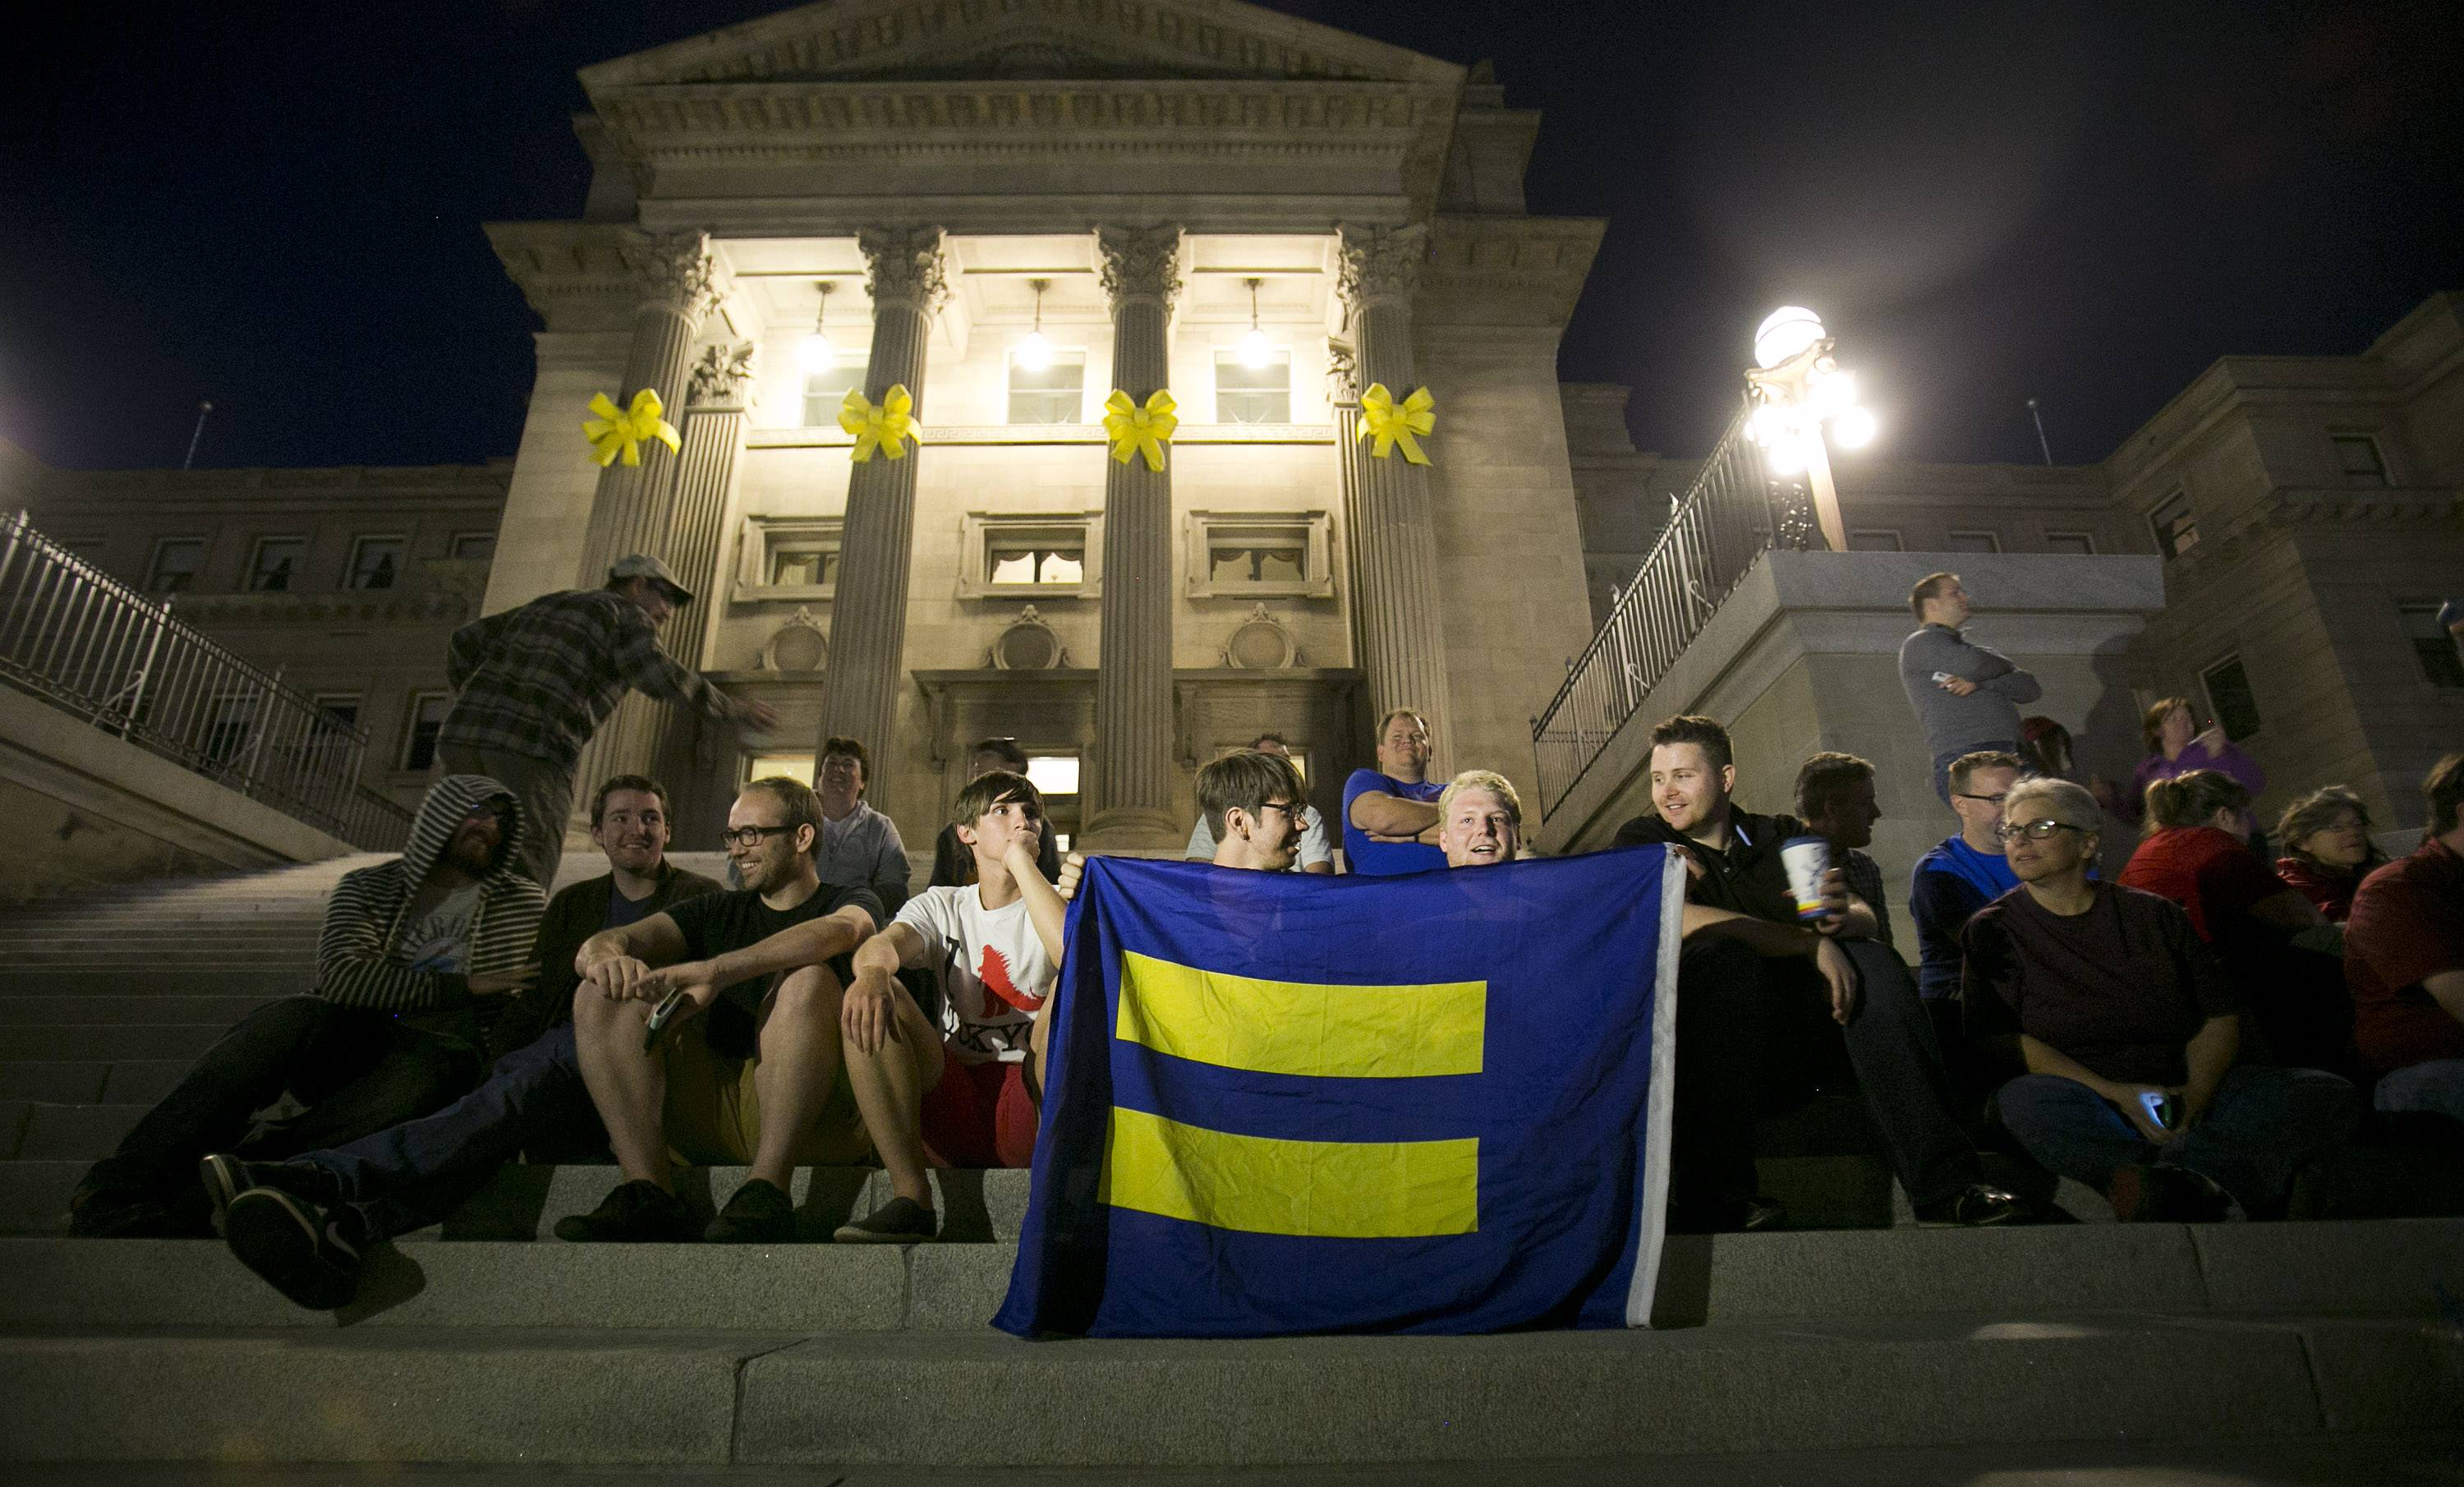 Judge strikes down Idaho's same-sex marriage ban